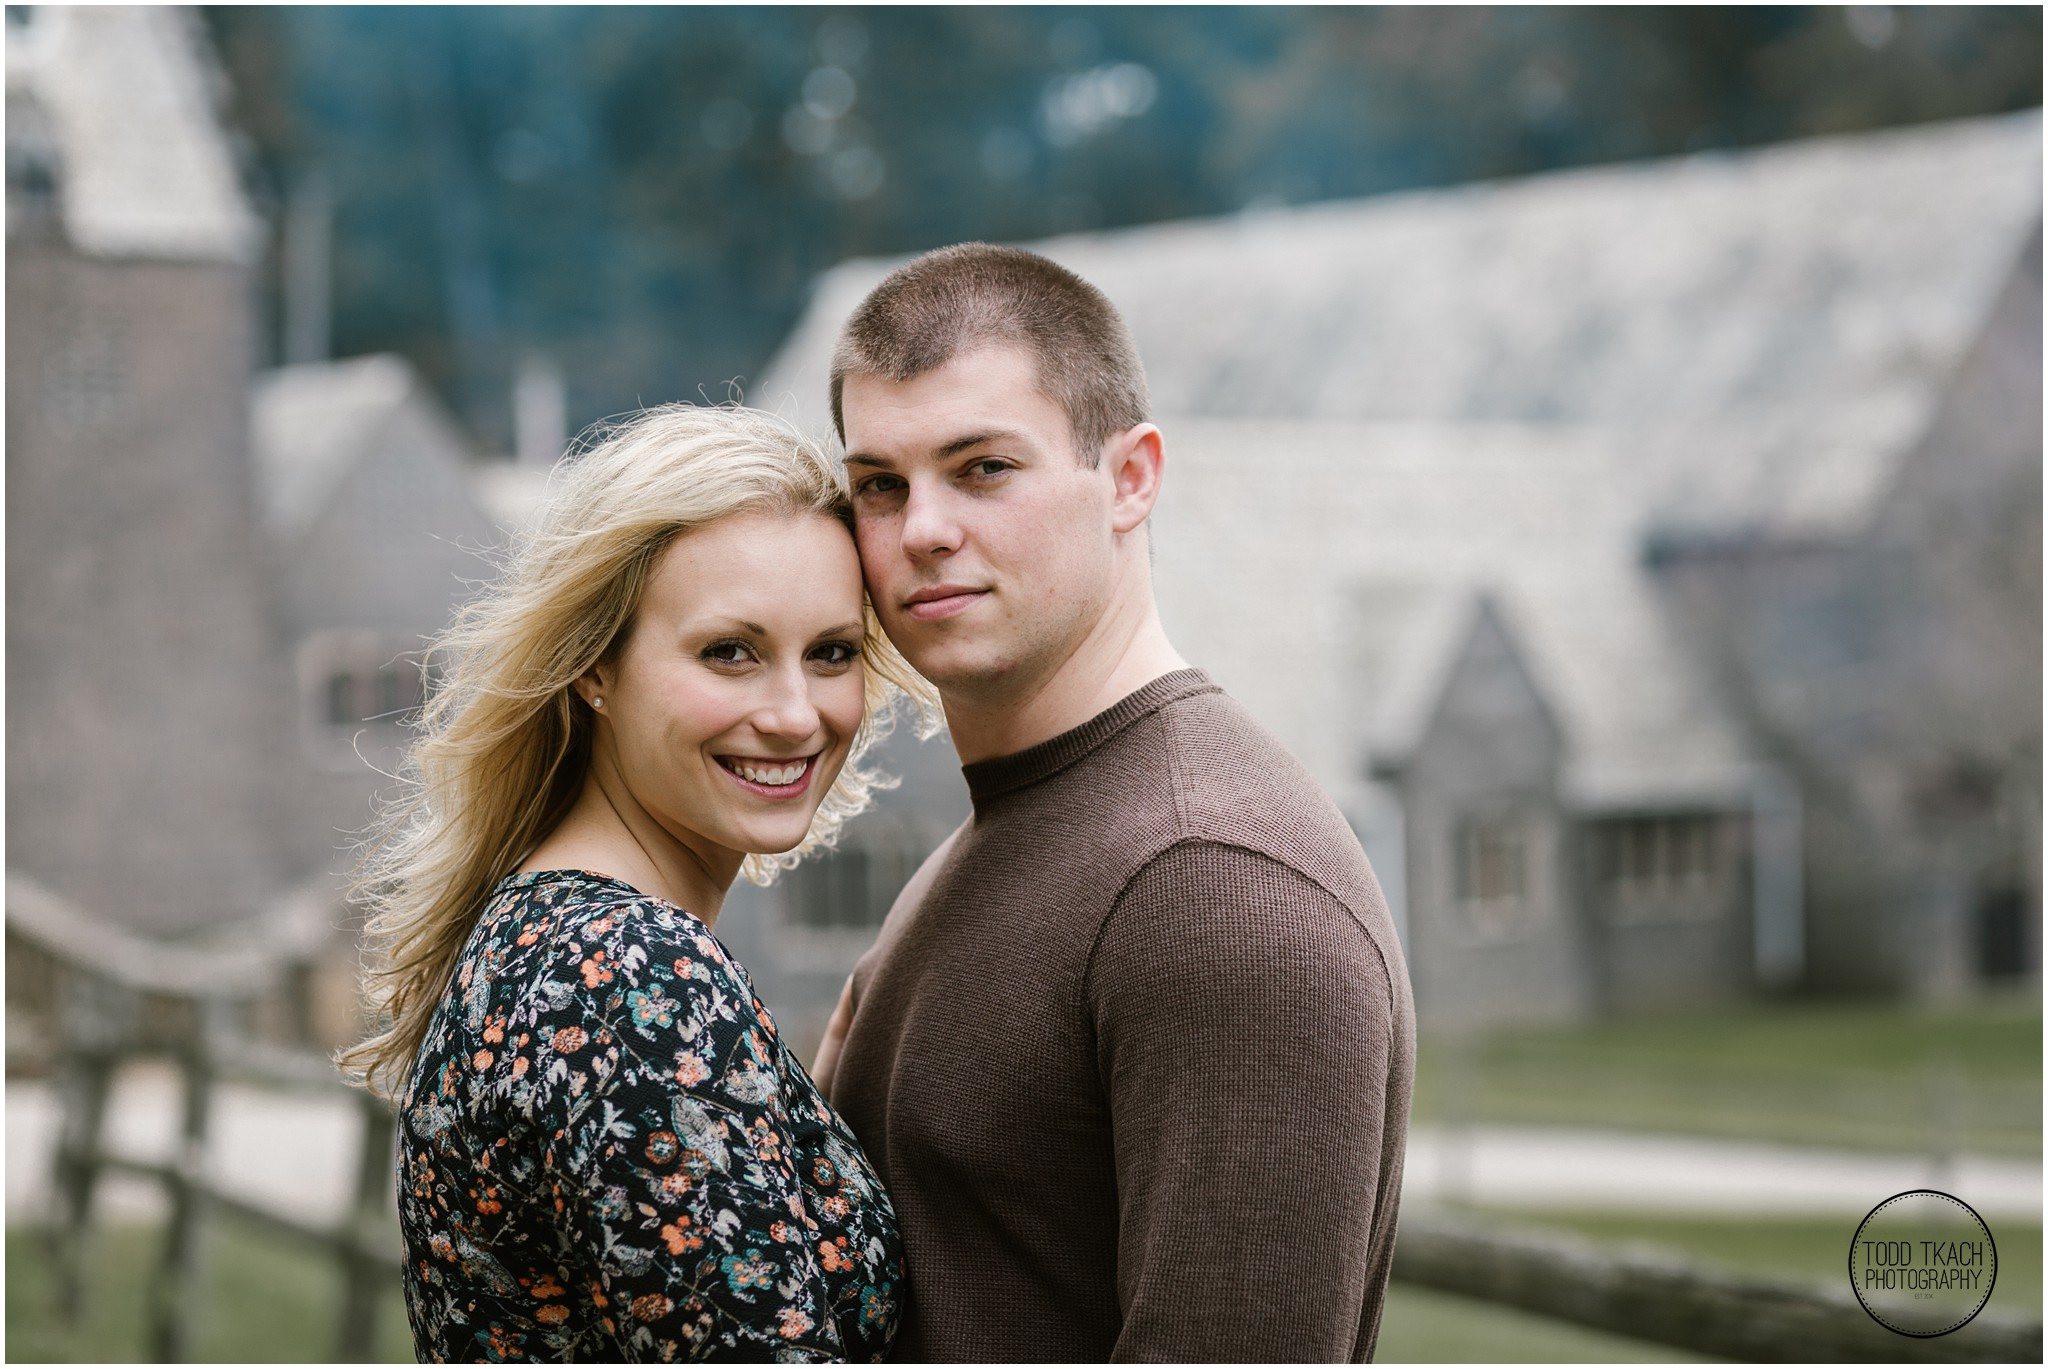 Christie & Scott - Hartwood Acres Stable Portraits